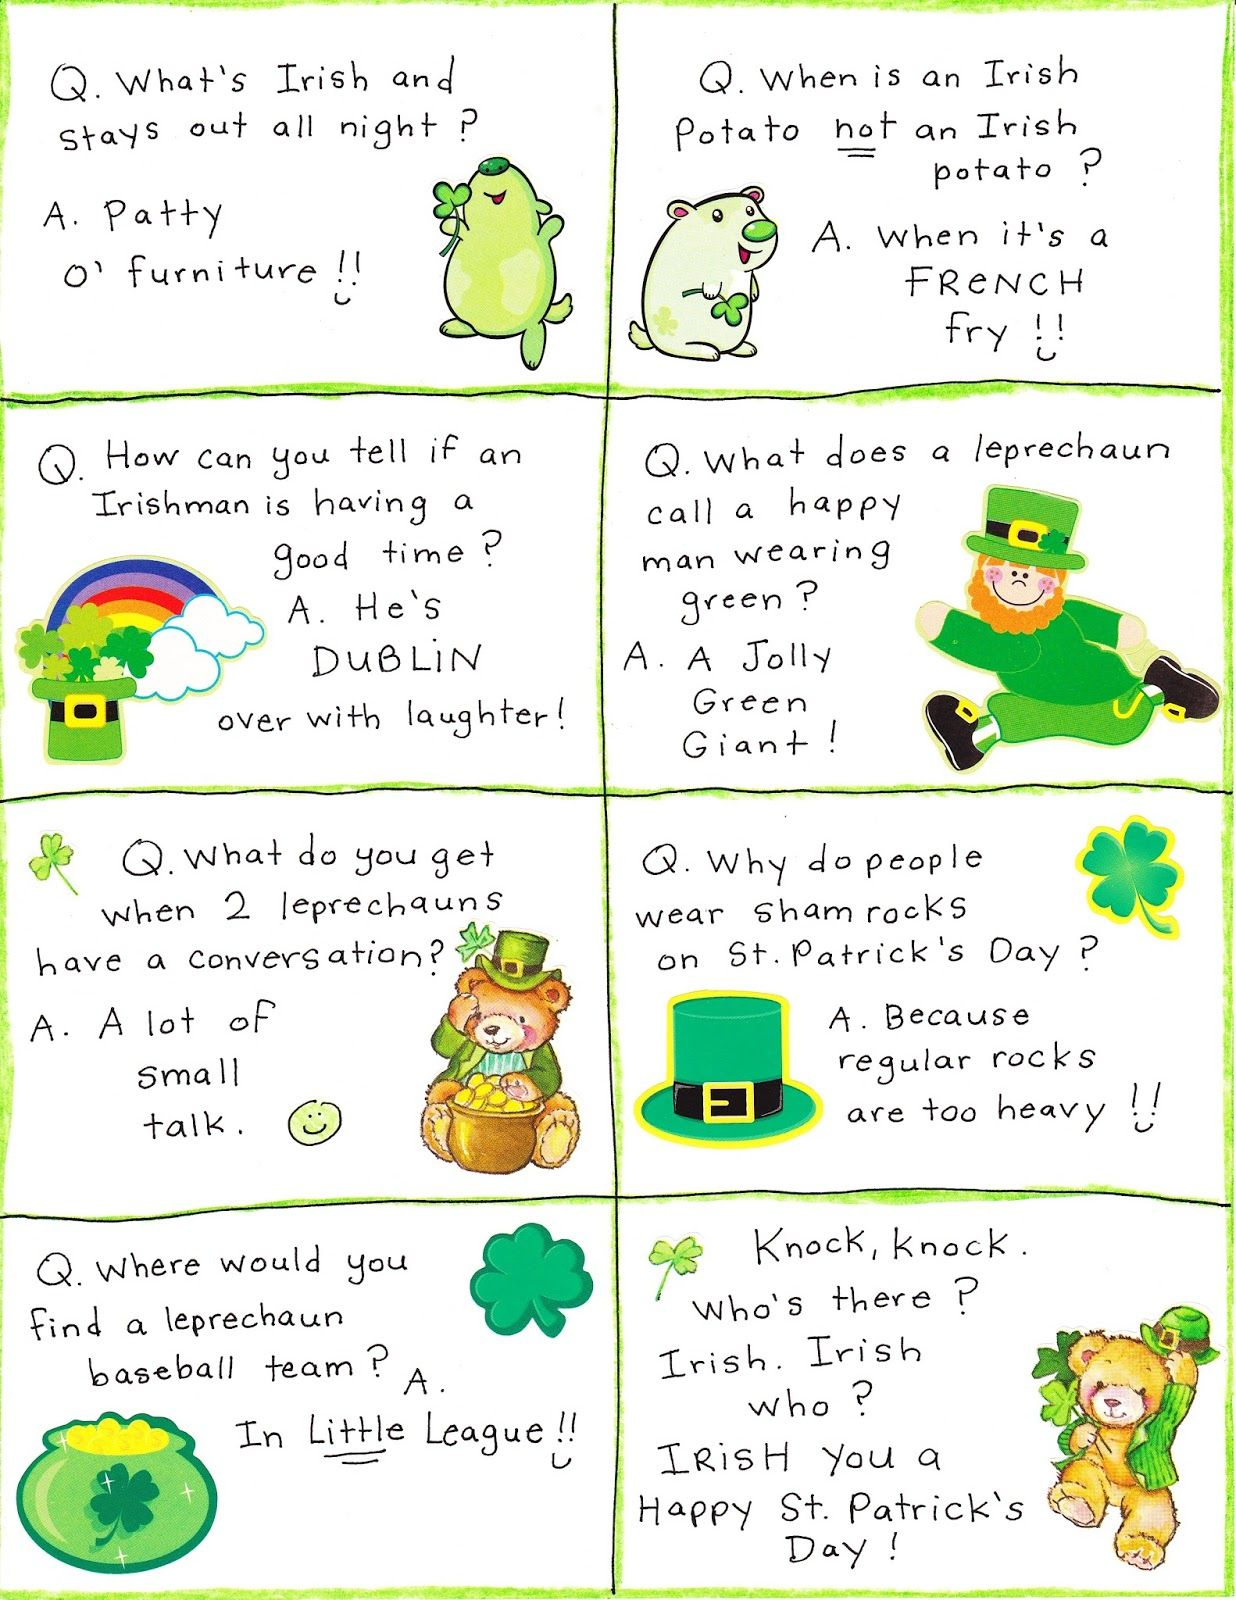 St Patrick S Day Irish Jokes Limericks Riddles One